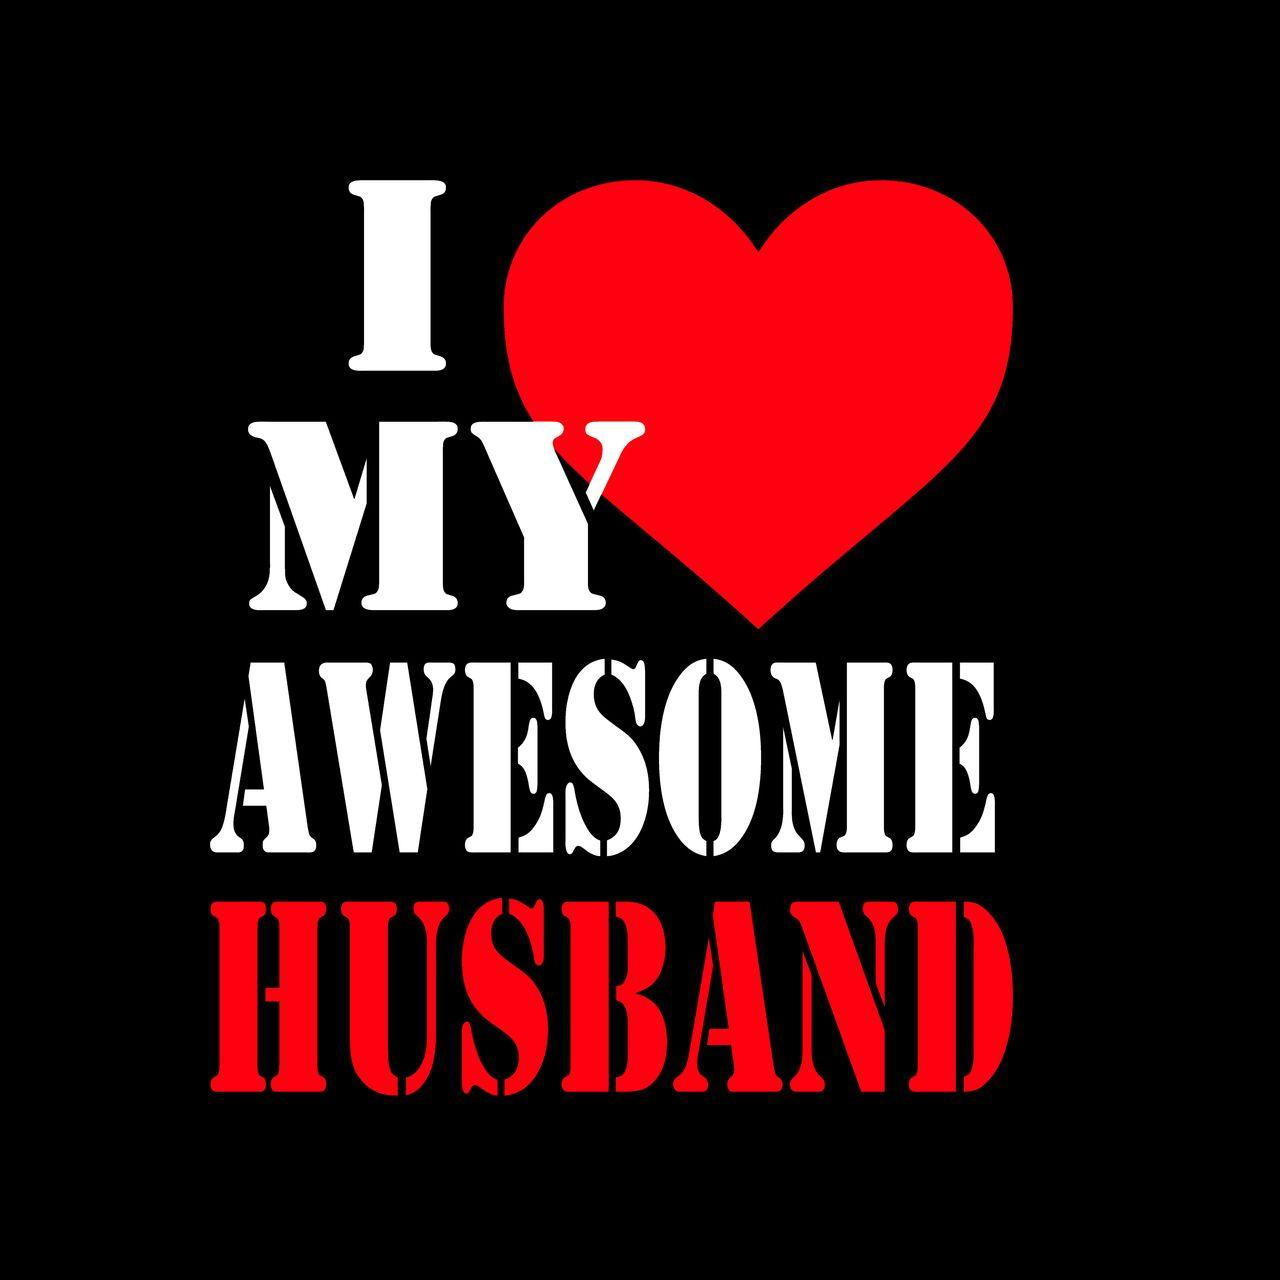 Love Wallpaper Husband Wife : I Love My Husband Wallpapers - Wallpaper cave